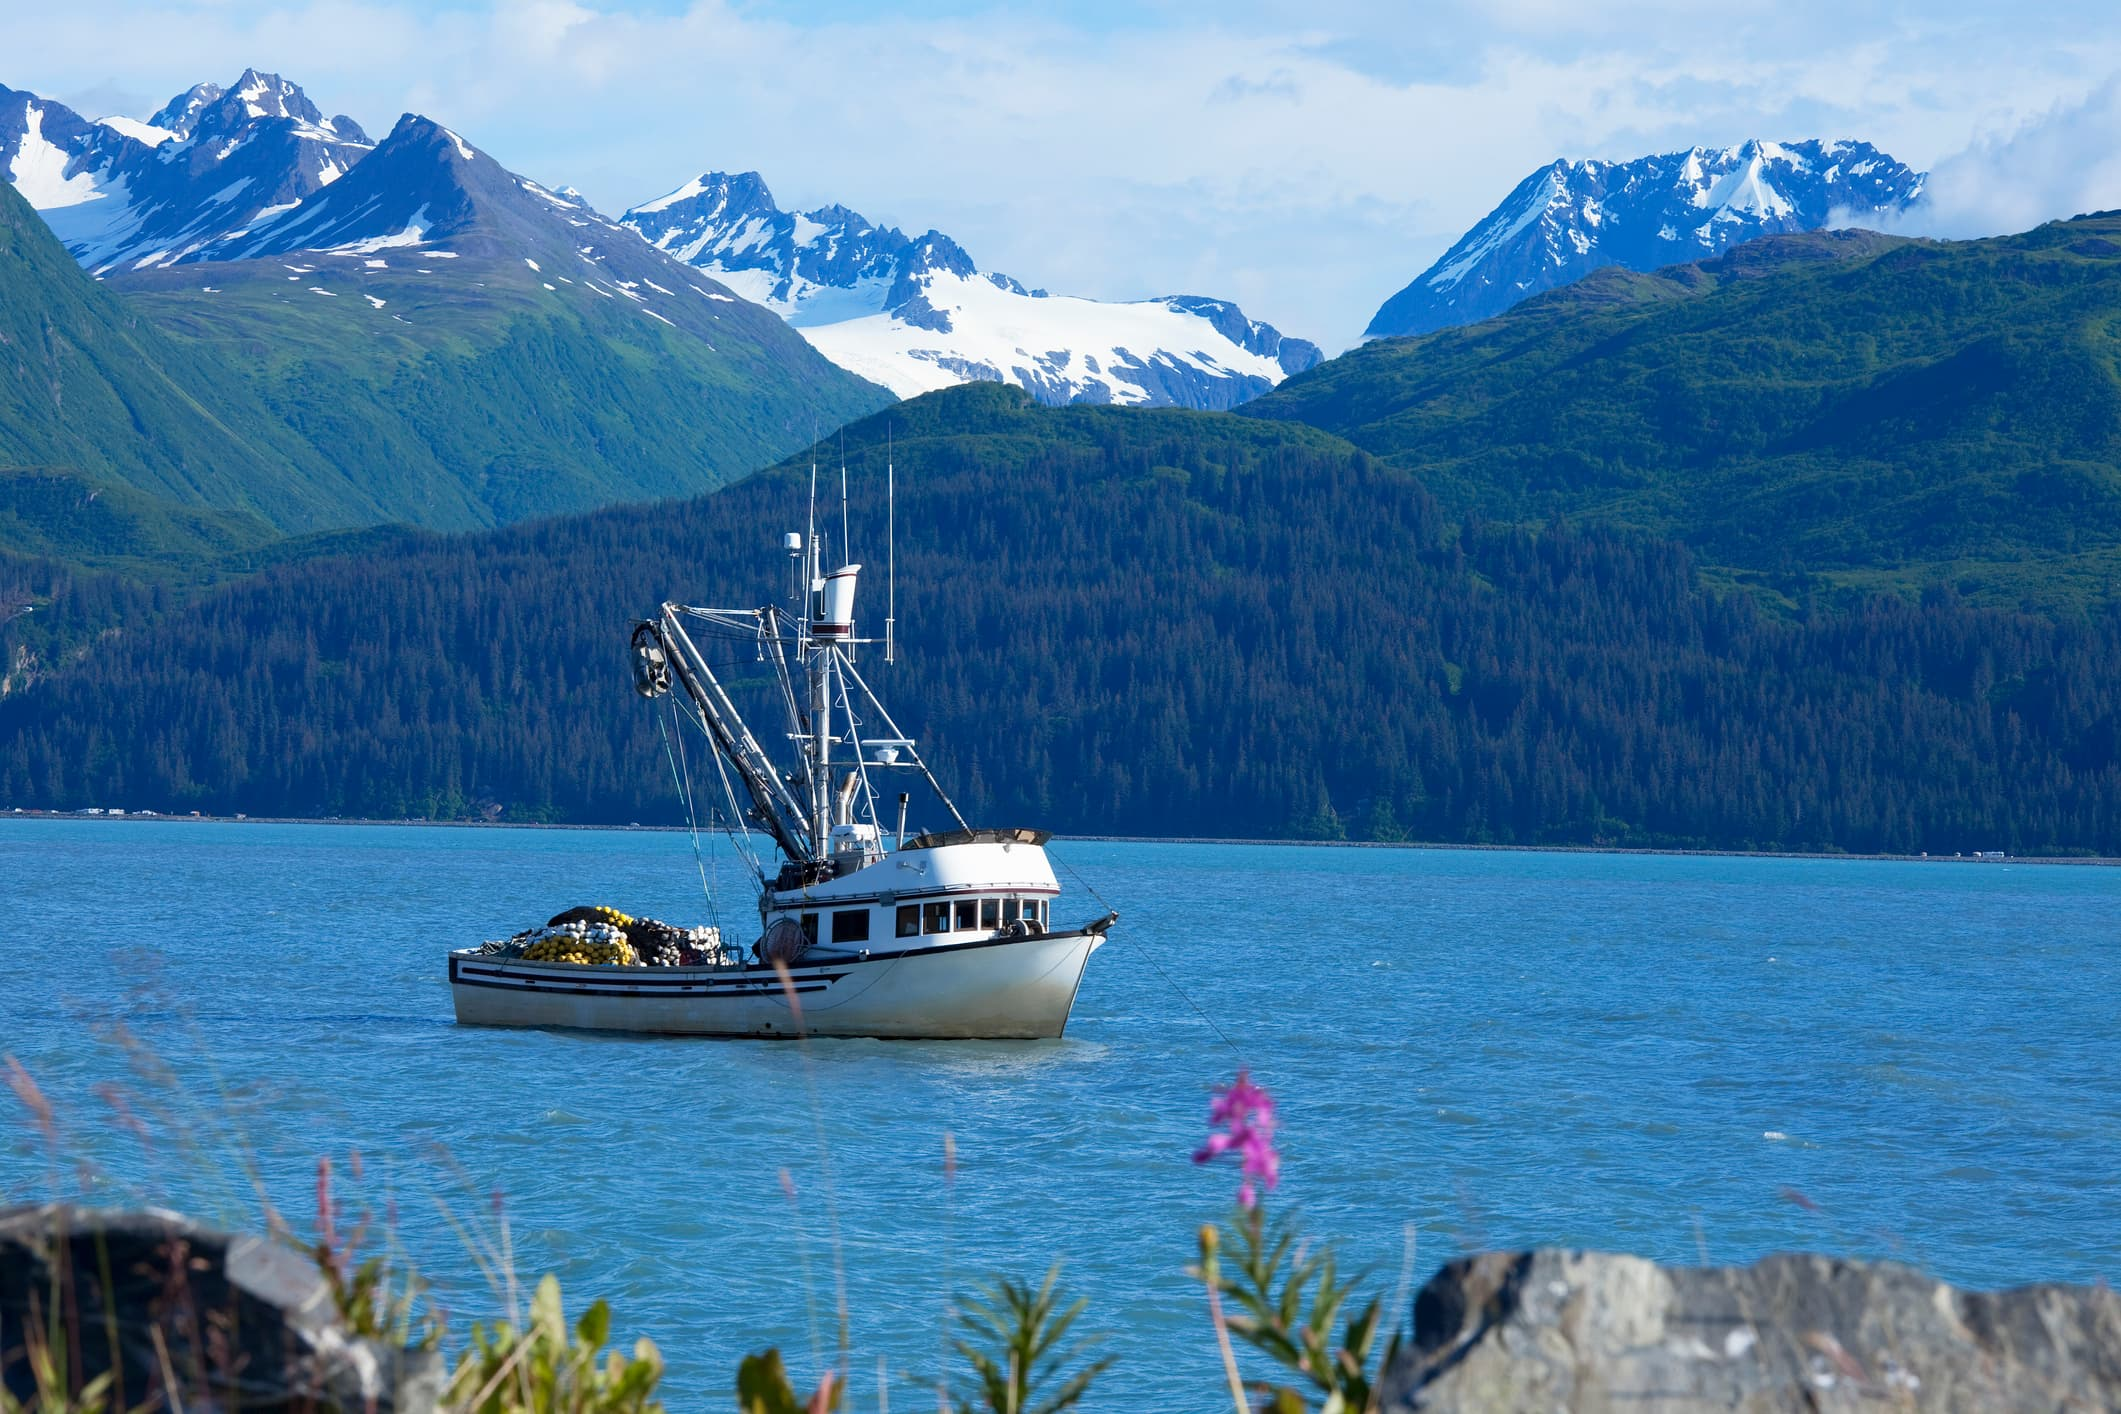 Salmon seining fishing boat anchored on a bay